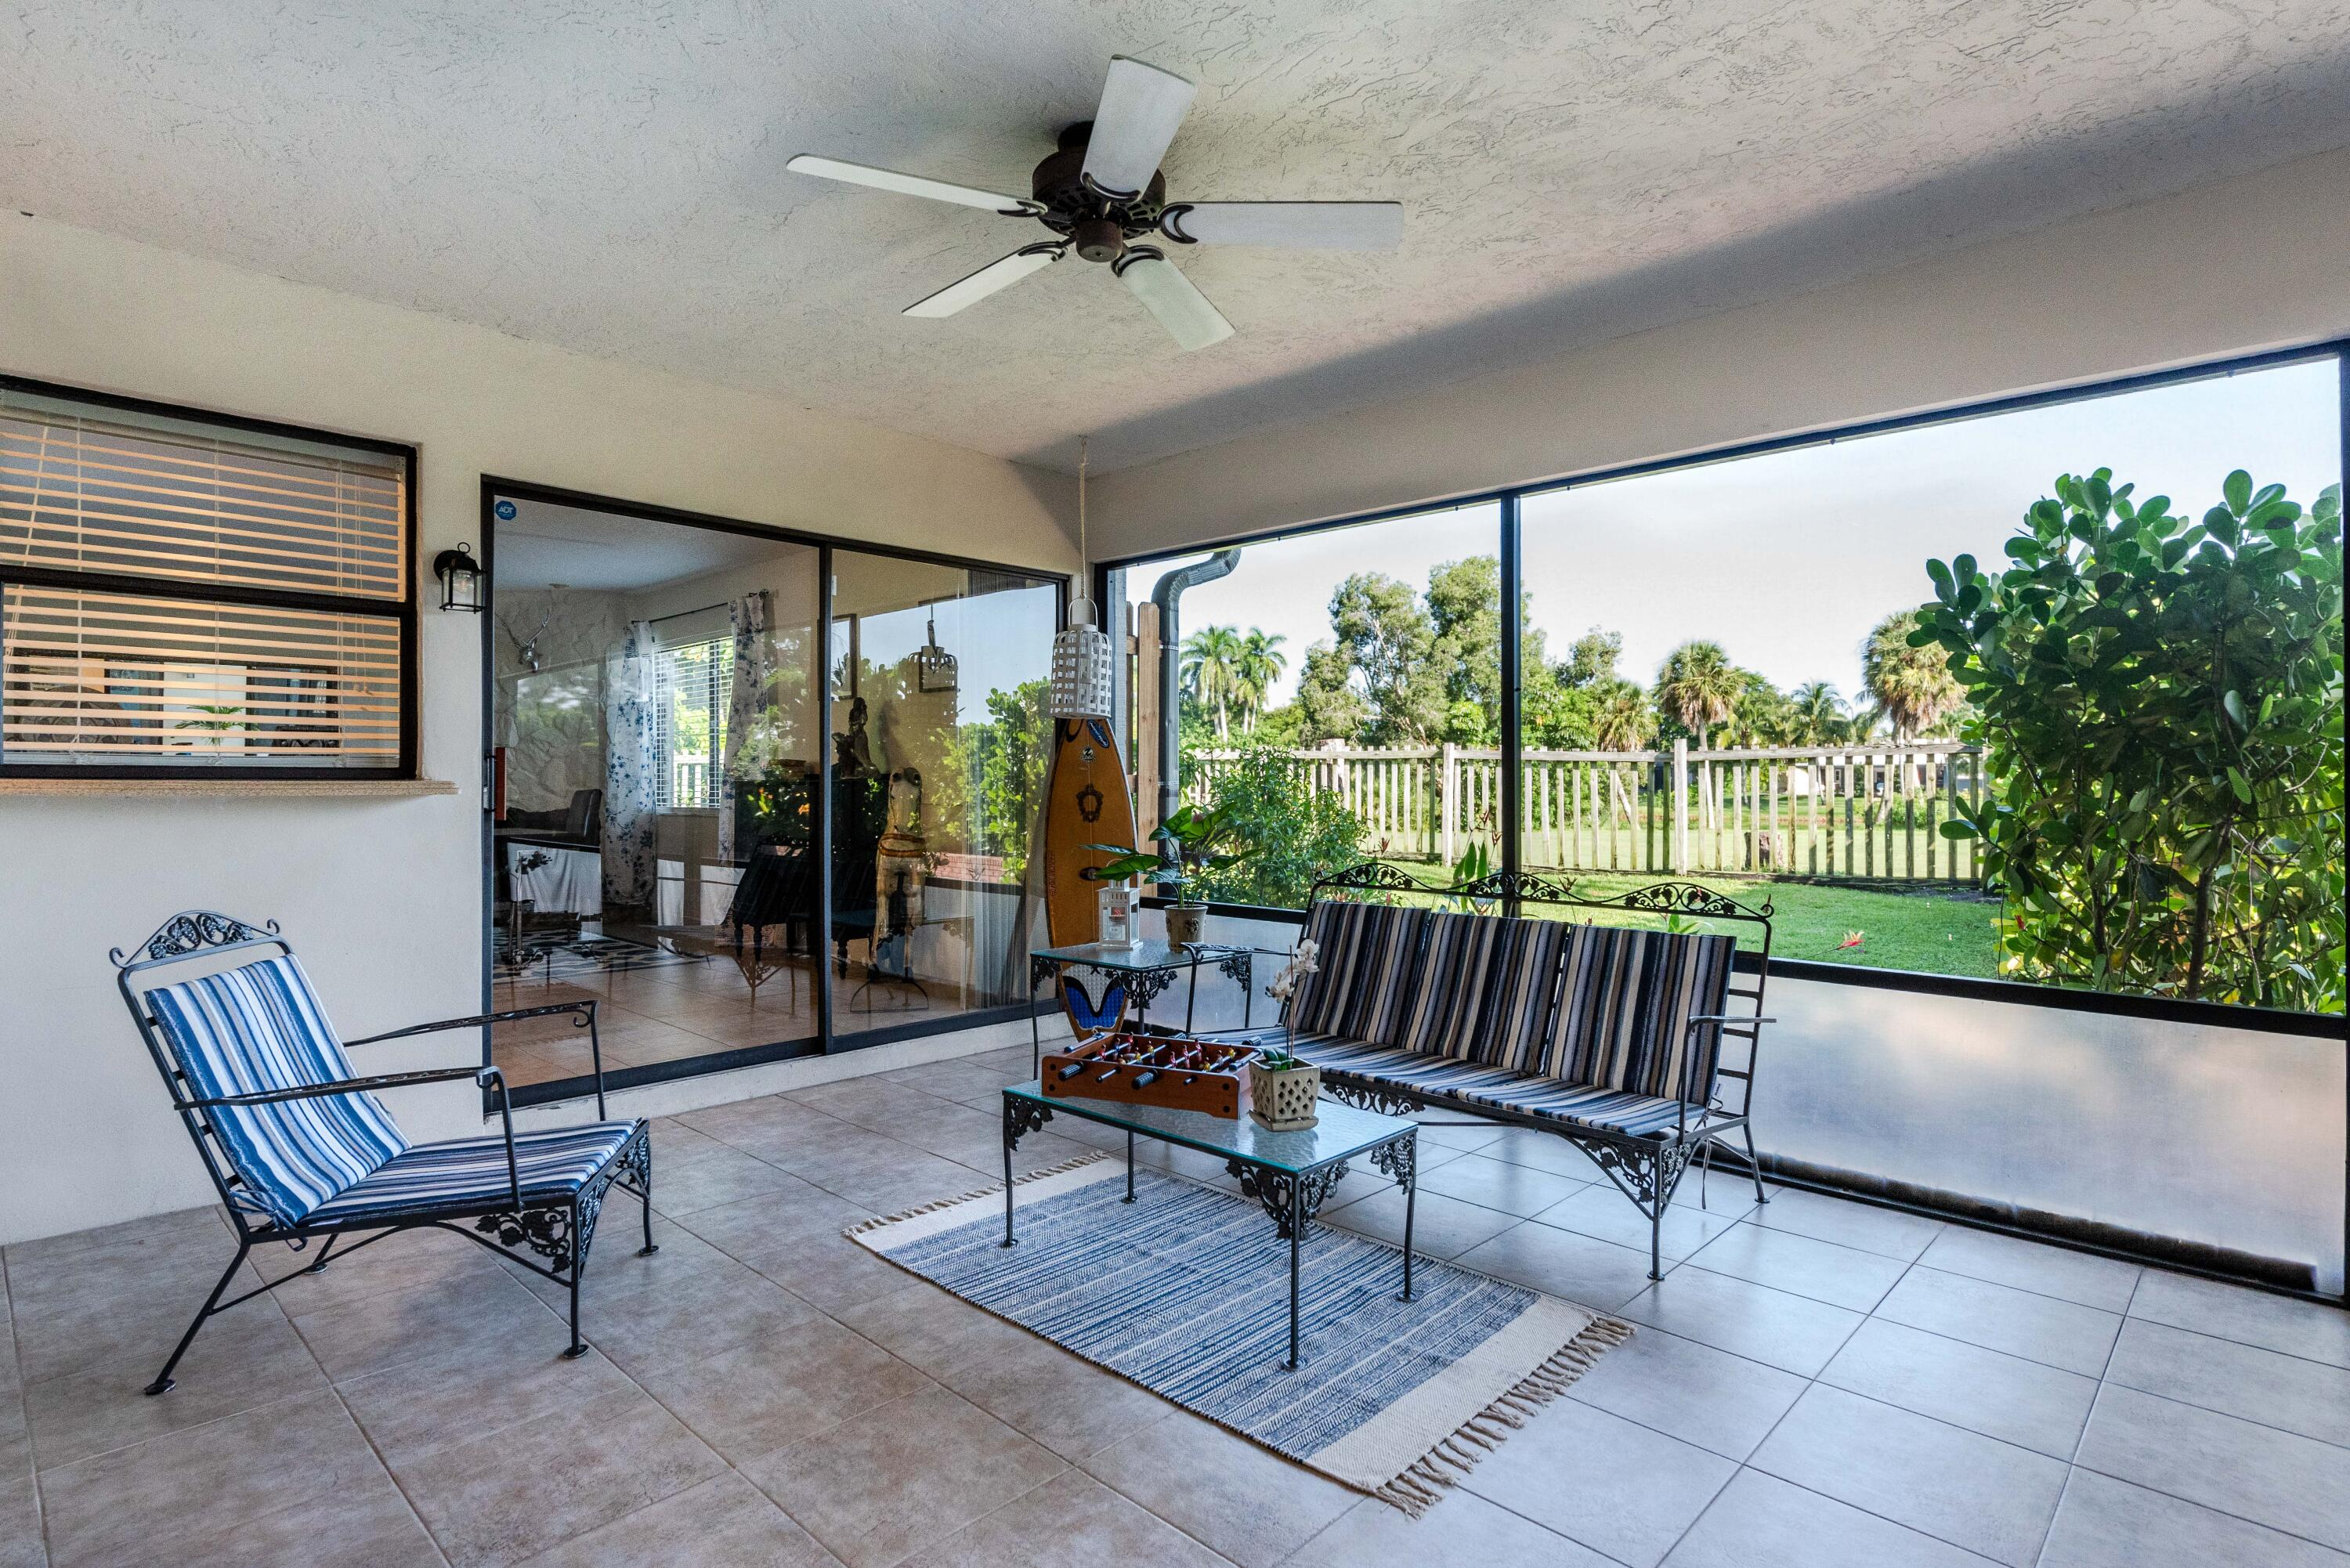 3519 Lakeview Dr (39 of 49)